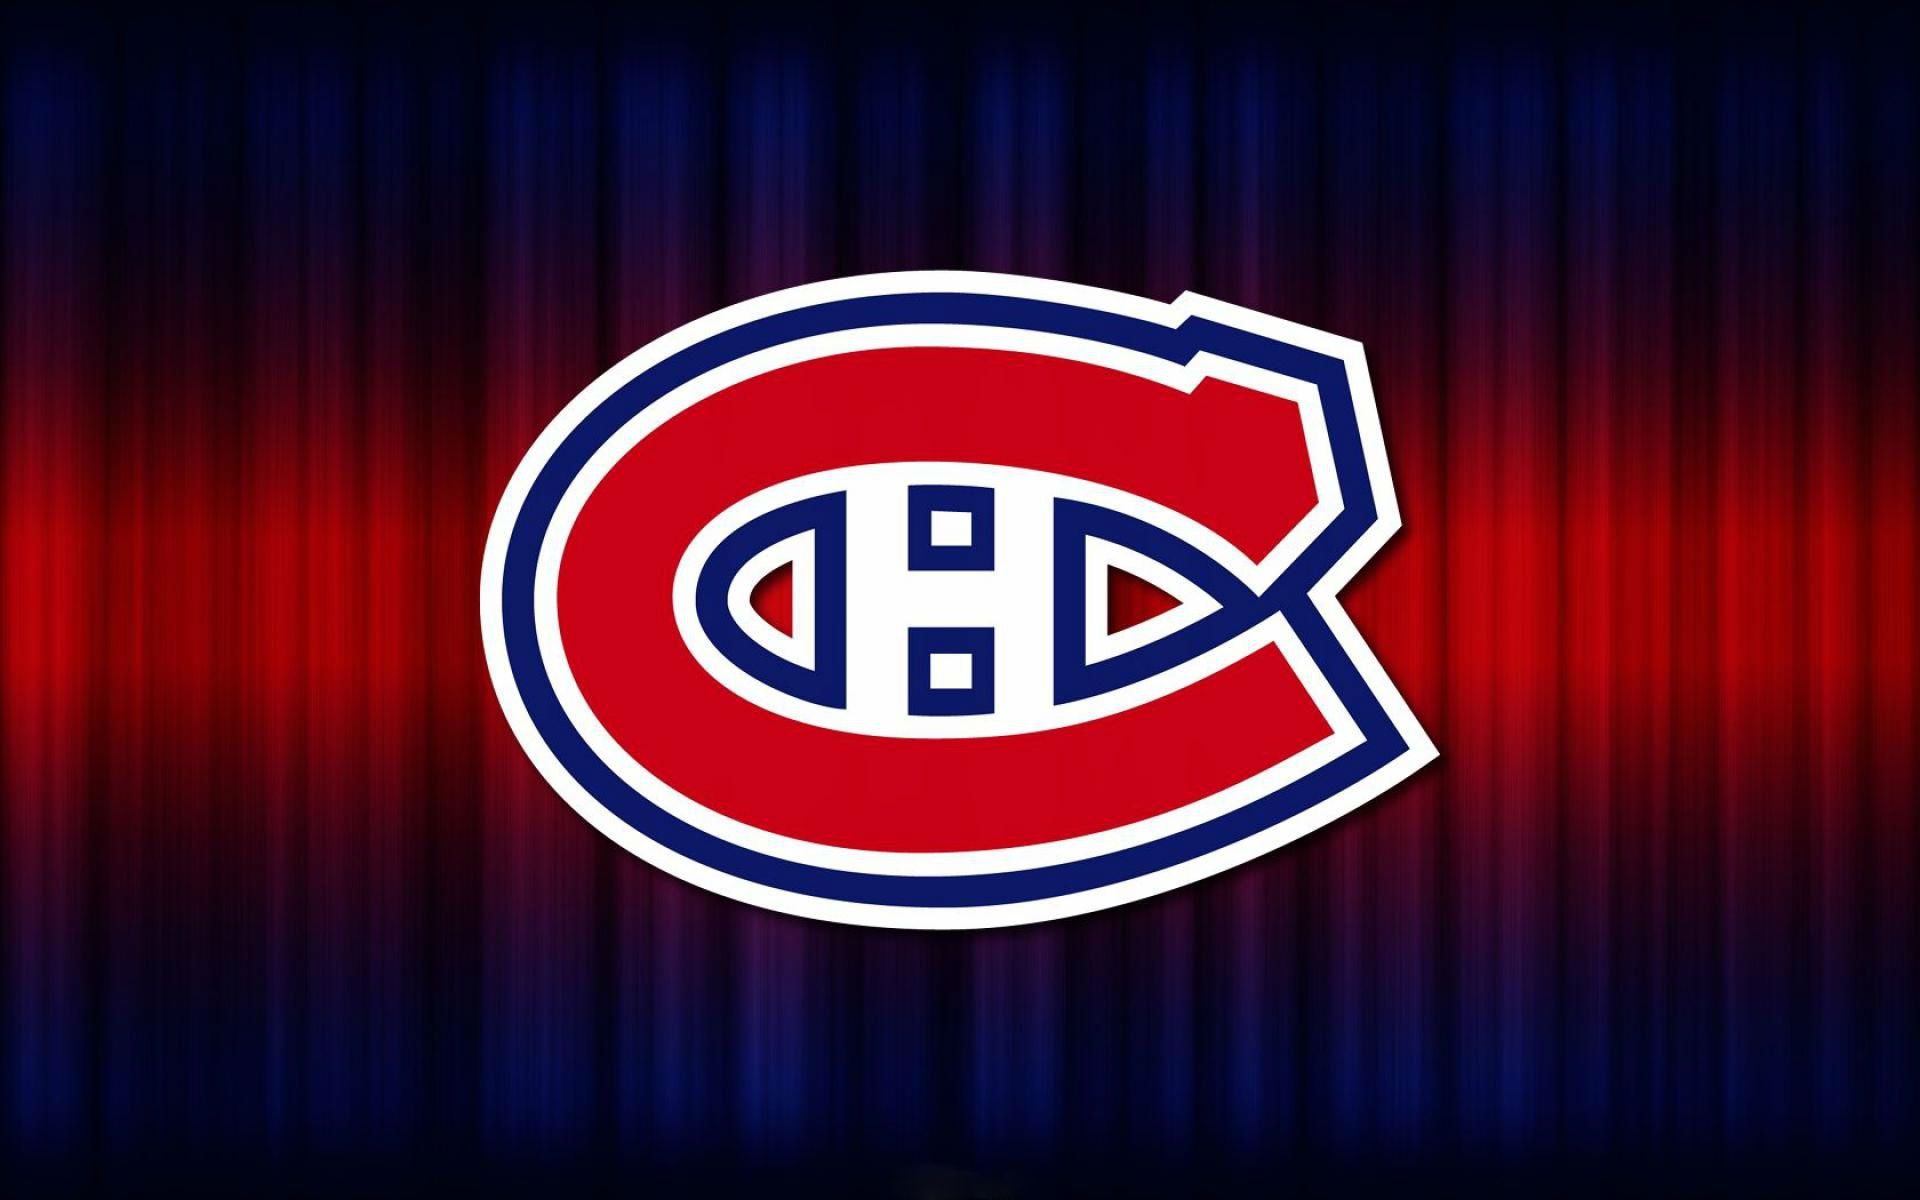 Simple Wallpaper Logo Montreal Canadiens - Montreal-Canadiens-montreal-canadiens-40371150-1920-1200  Graphic_194999.jpg